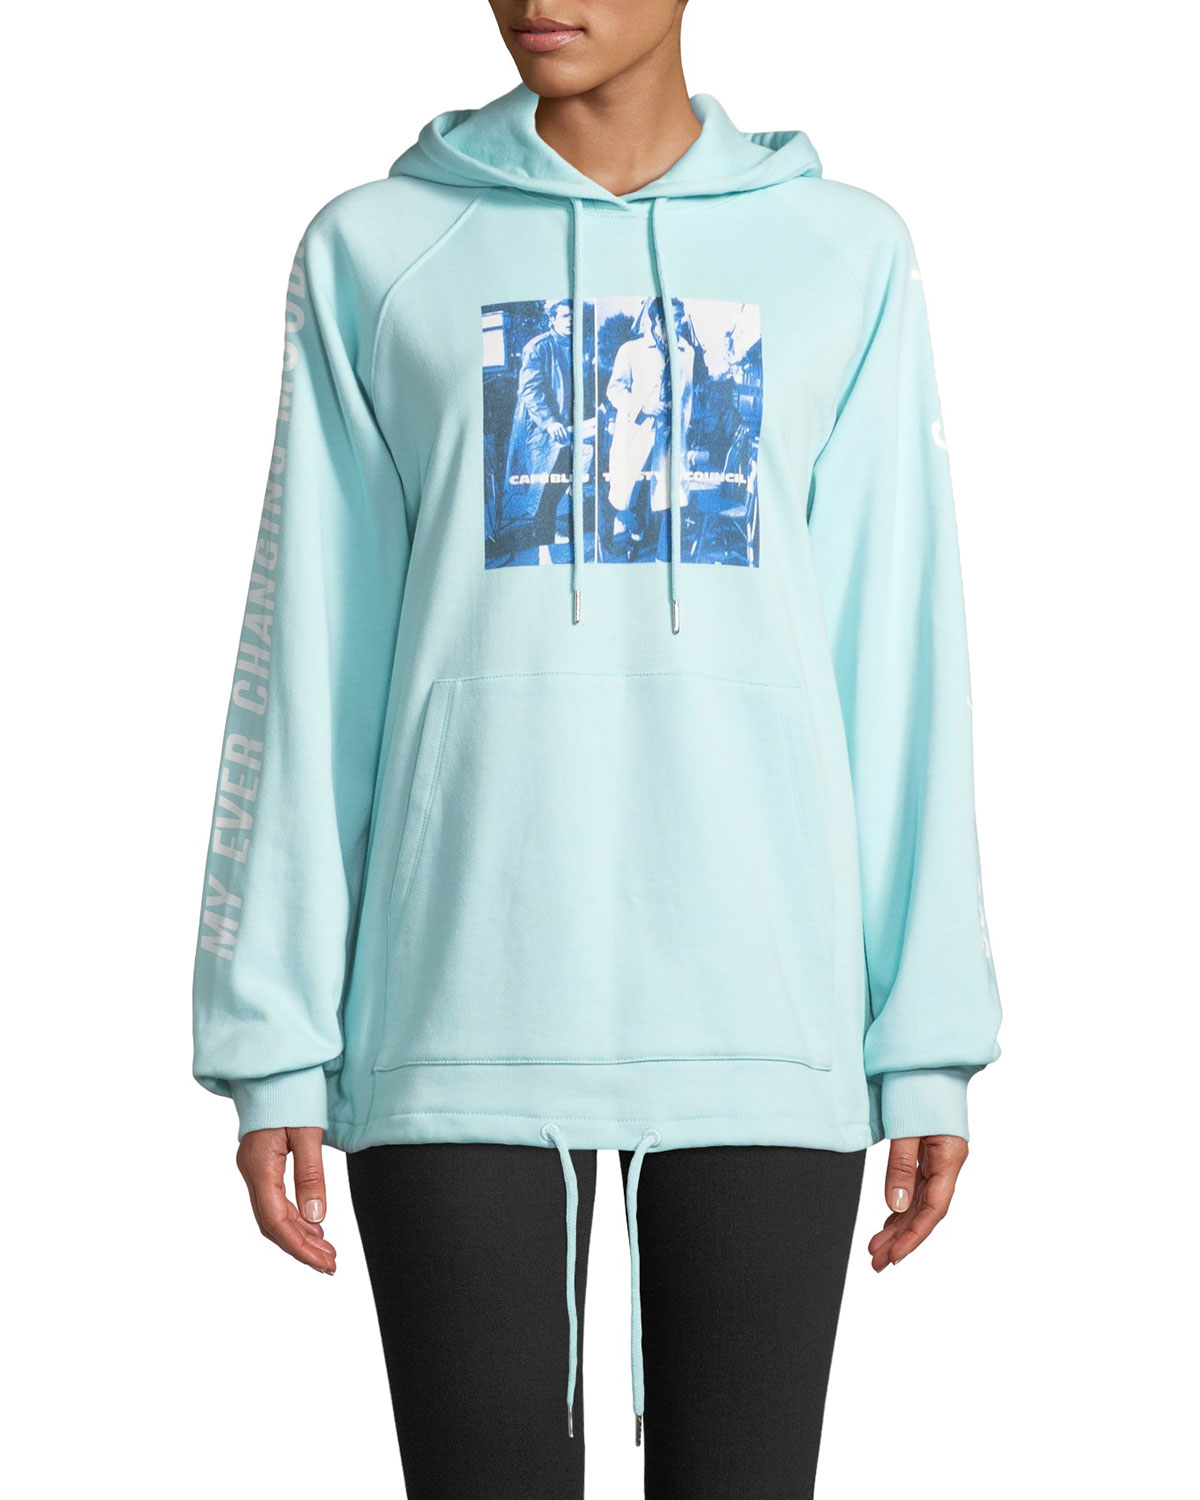 Style Council Boxy Graphic Pullover Hoodie